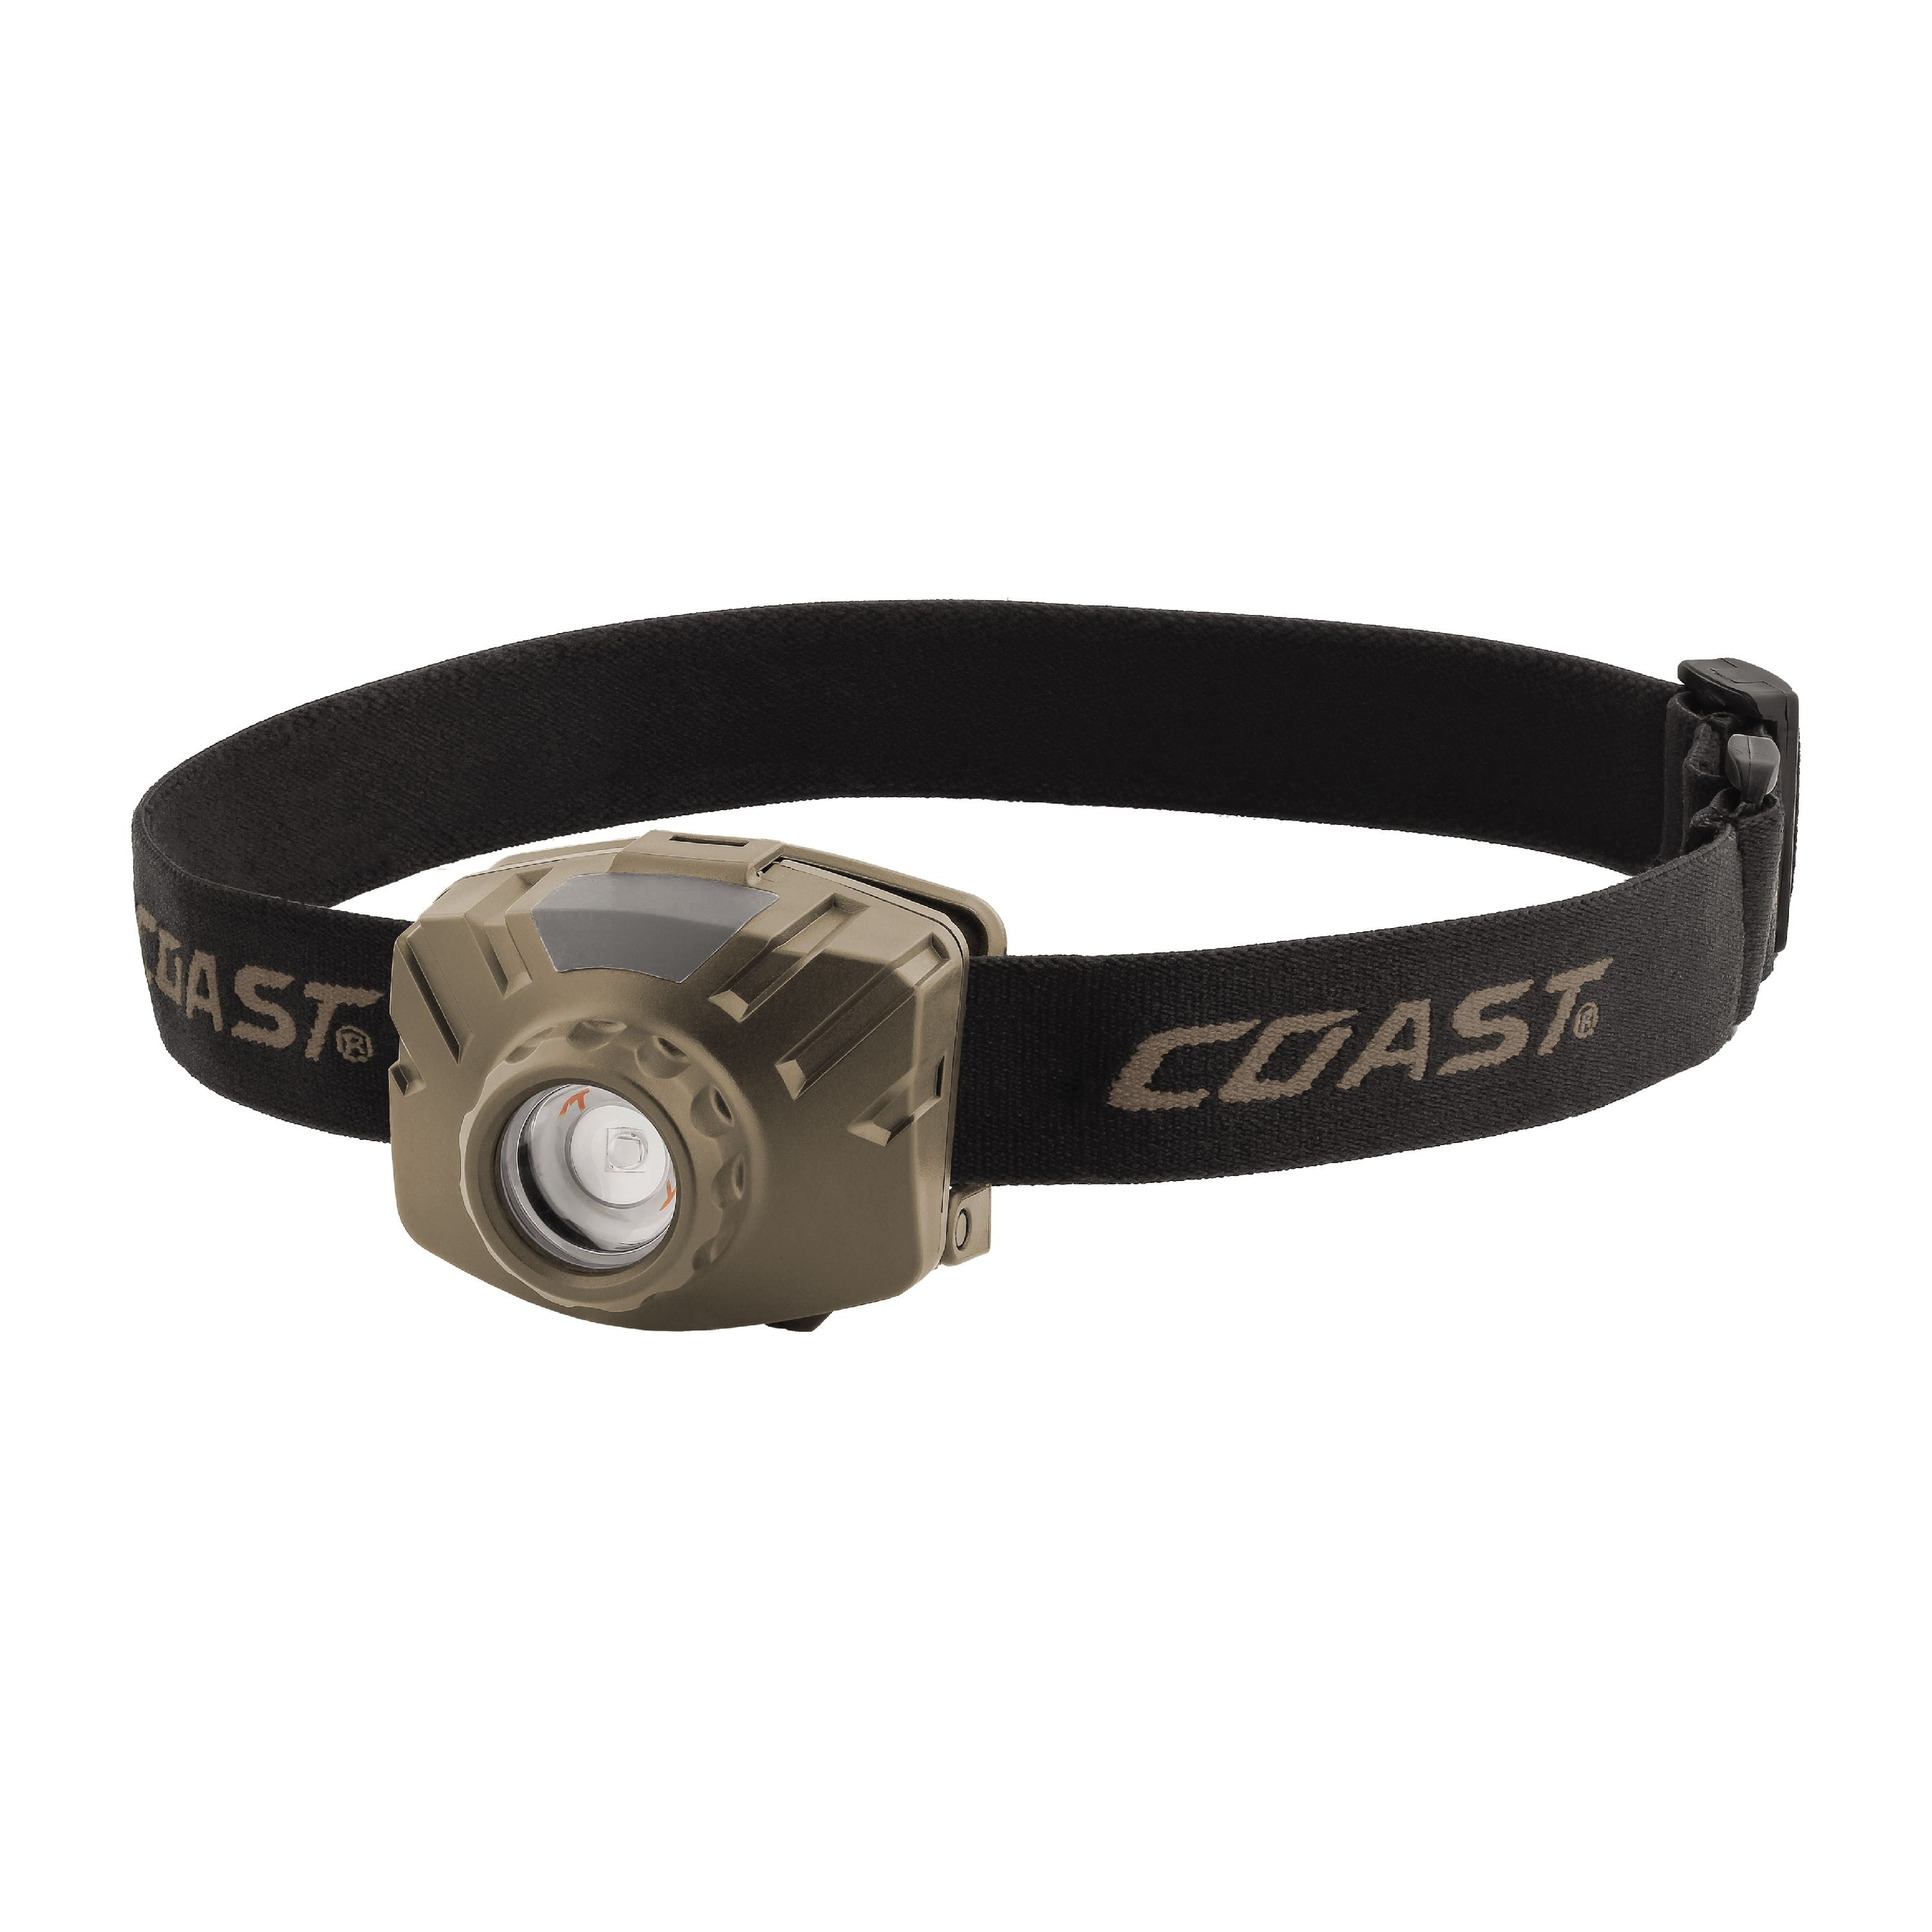 COAST 450 Lumen LED Headlamp